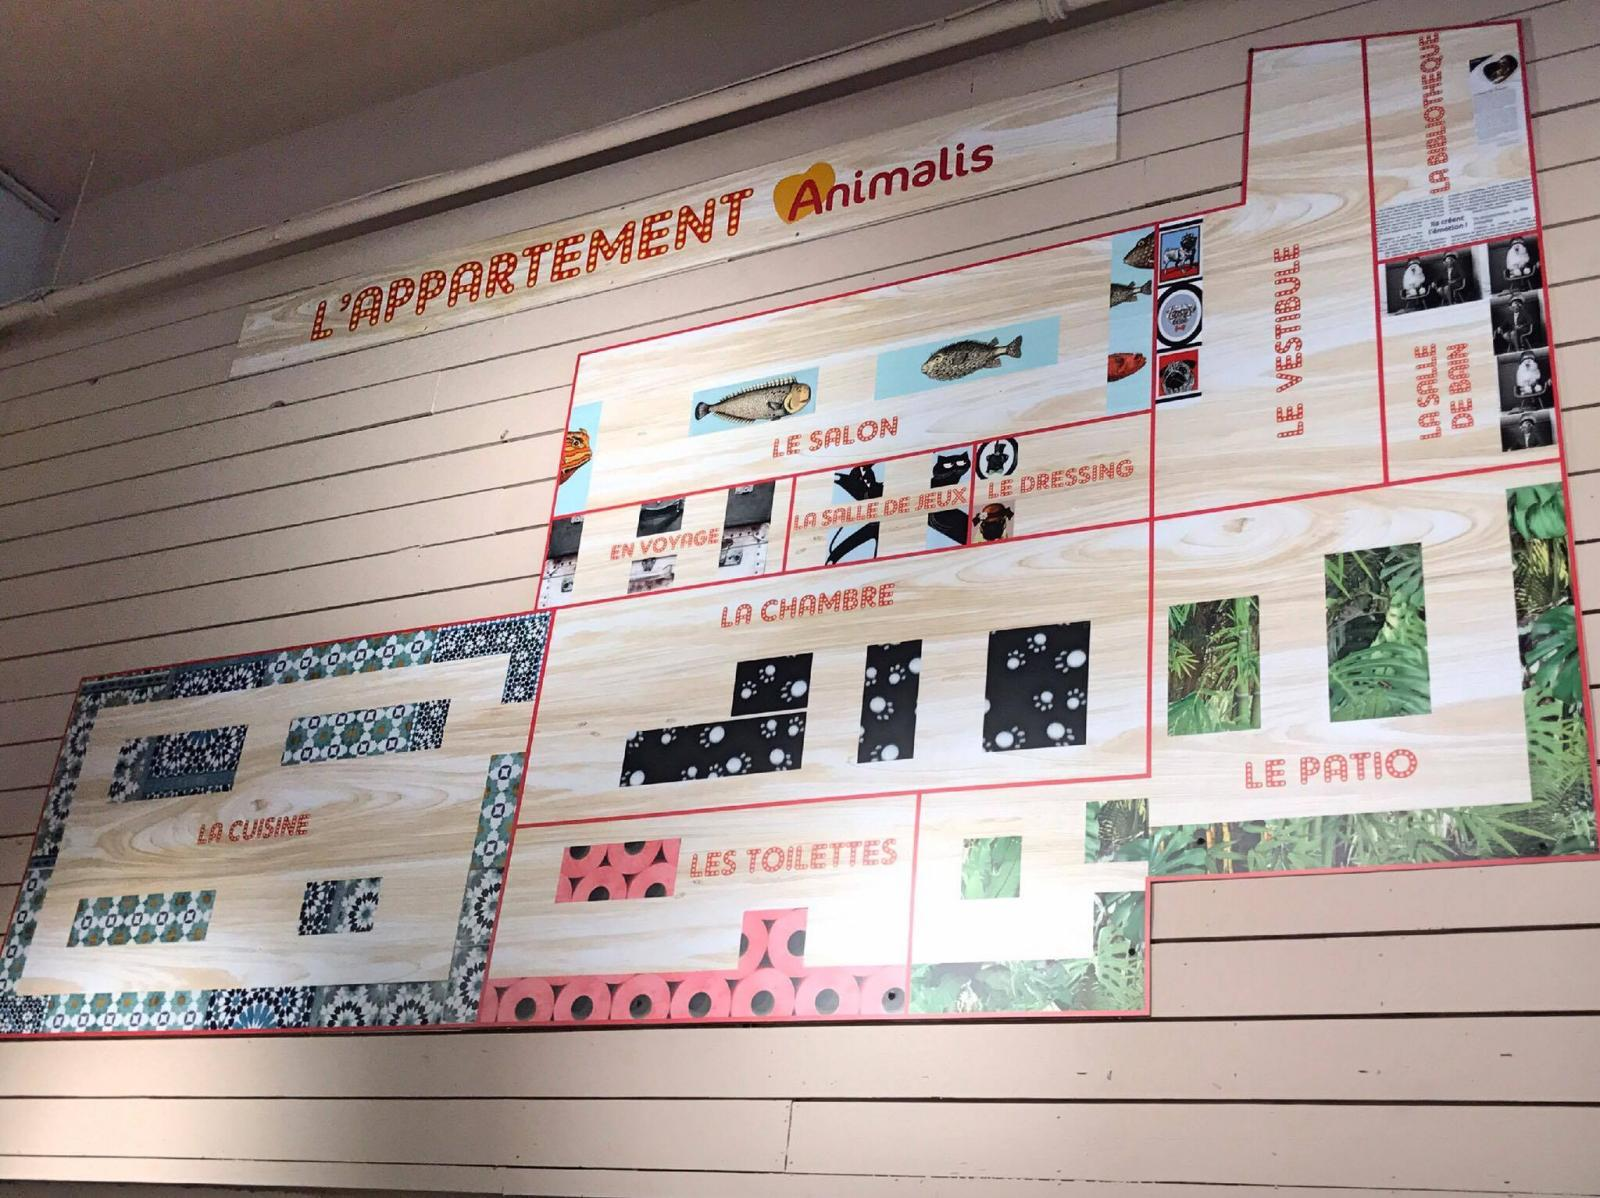 plan de l'appartement animalis bercy